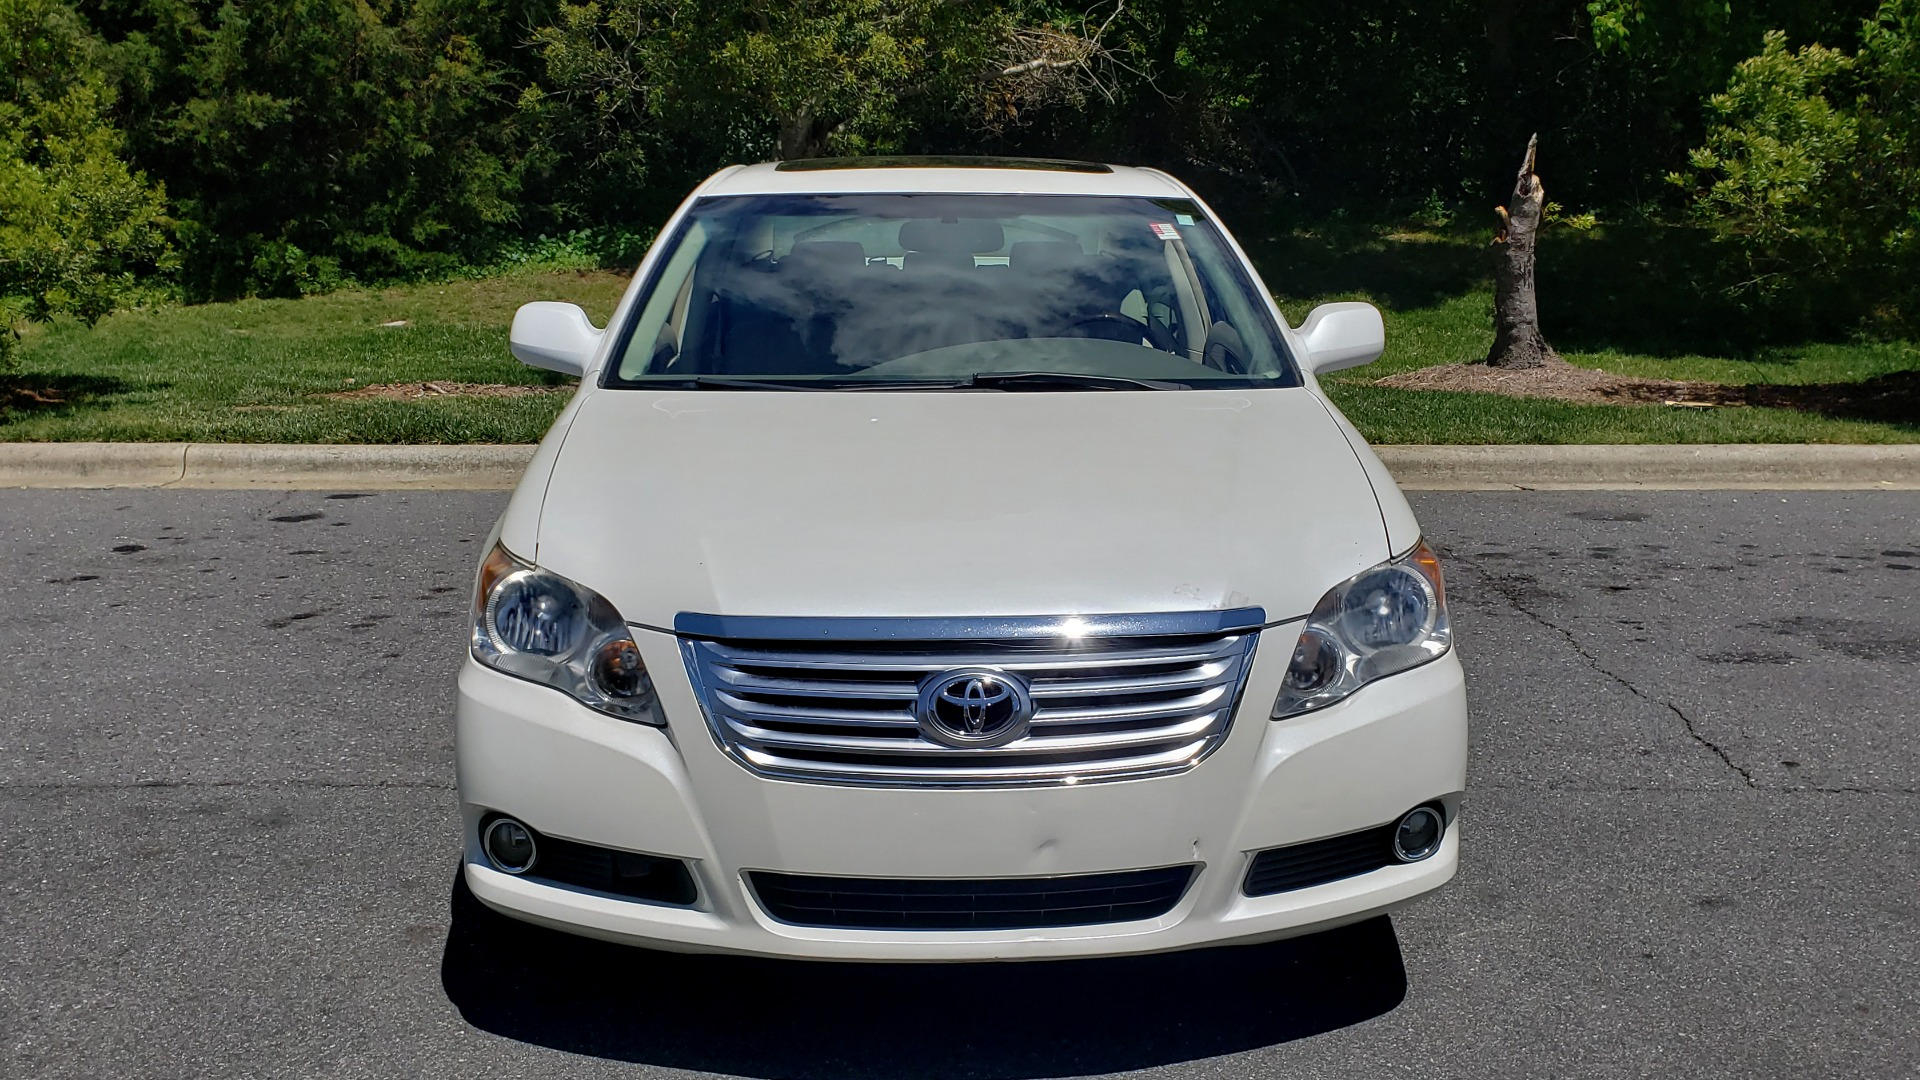 Used 2008 Toyota AVALON LIMITED V6 / FWD / SUNROOF / DYN RADAR CRUISE / BRAKE ASST for sale Sold at Formula Imports in Charlotte NC 28227 16